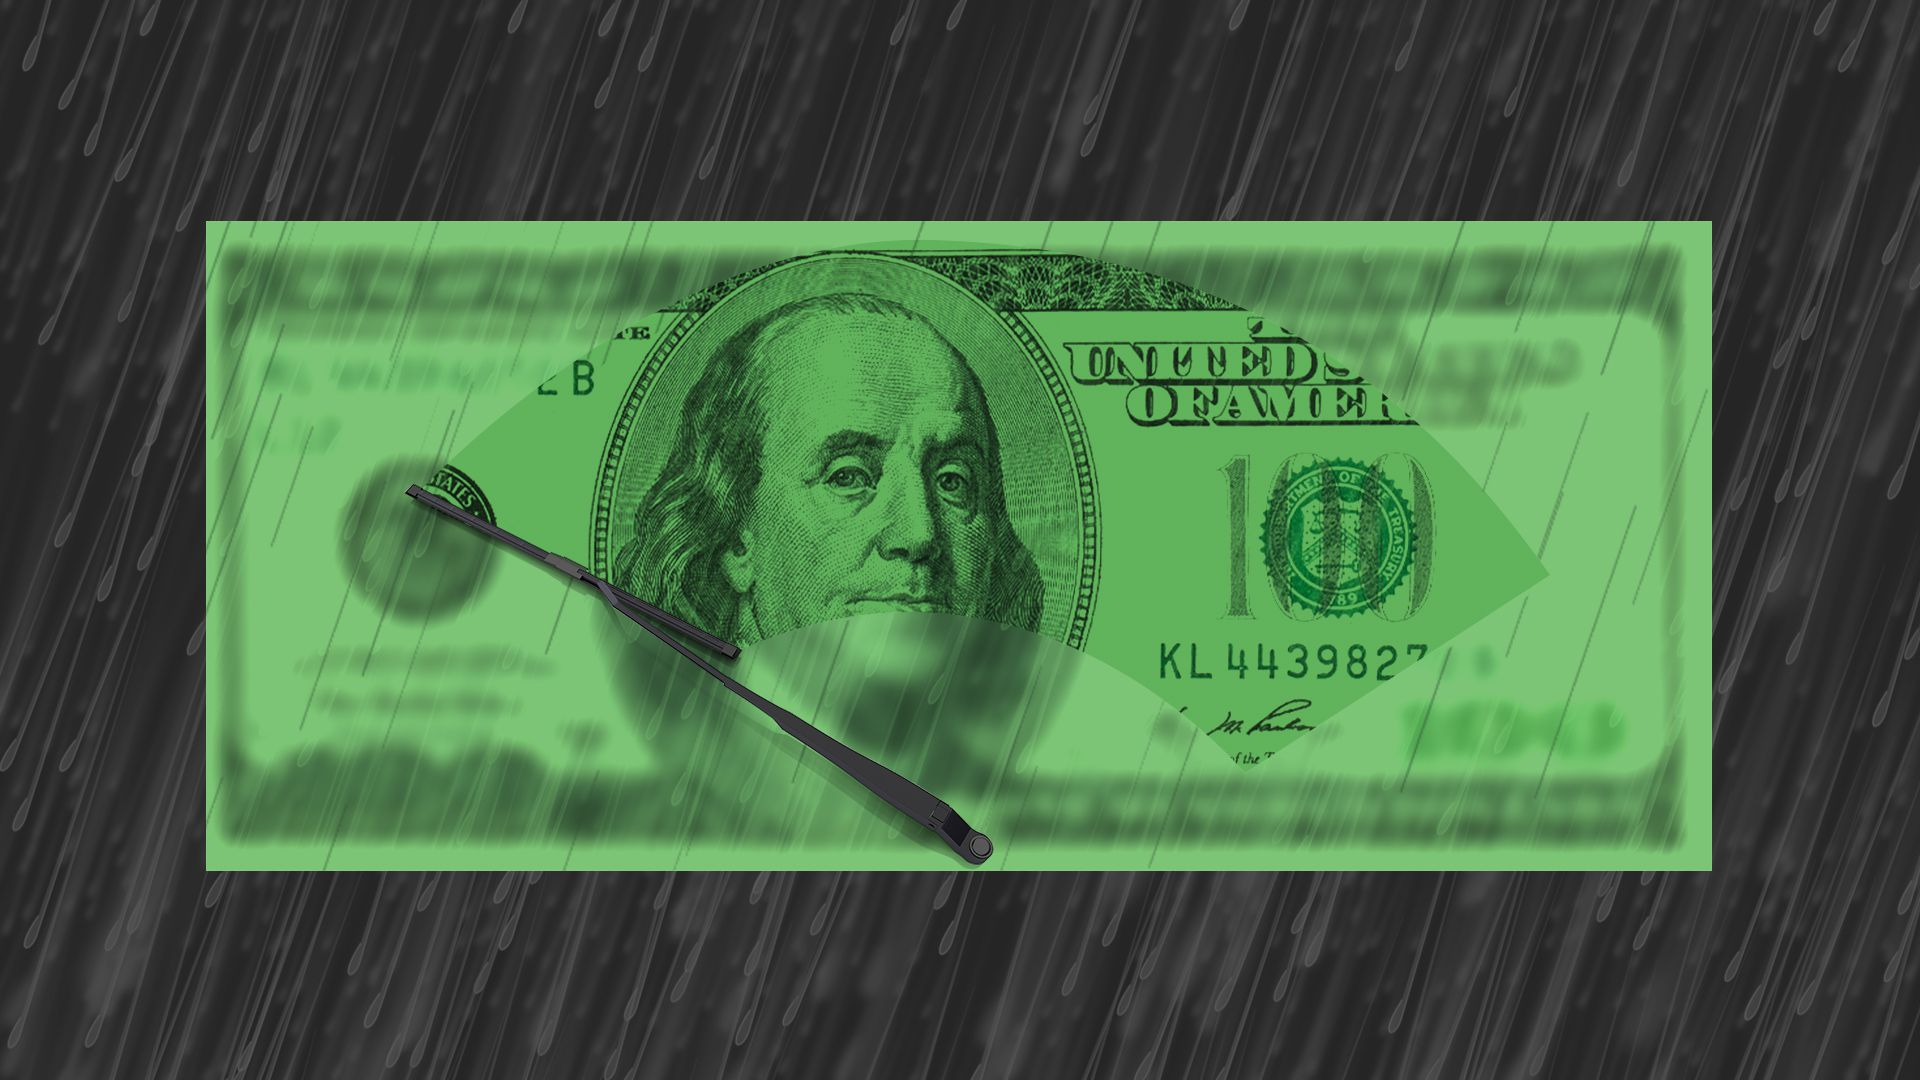 Illustration of a hundred dollar bill in the rain with the rain on the bill being wiped away.